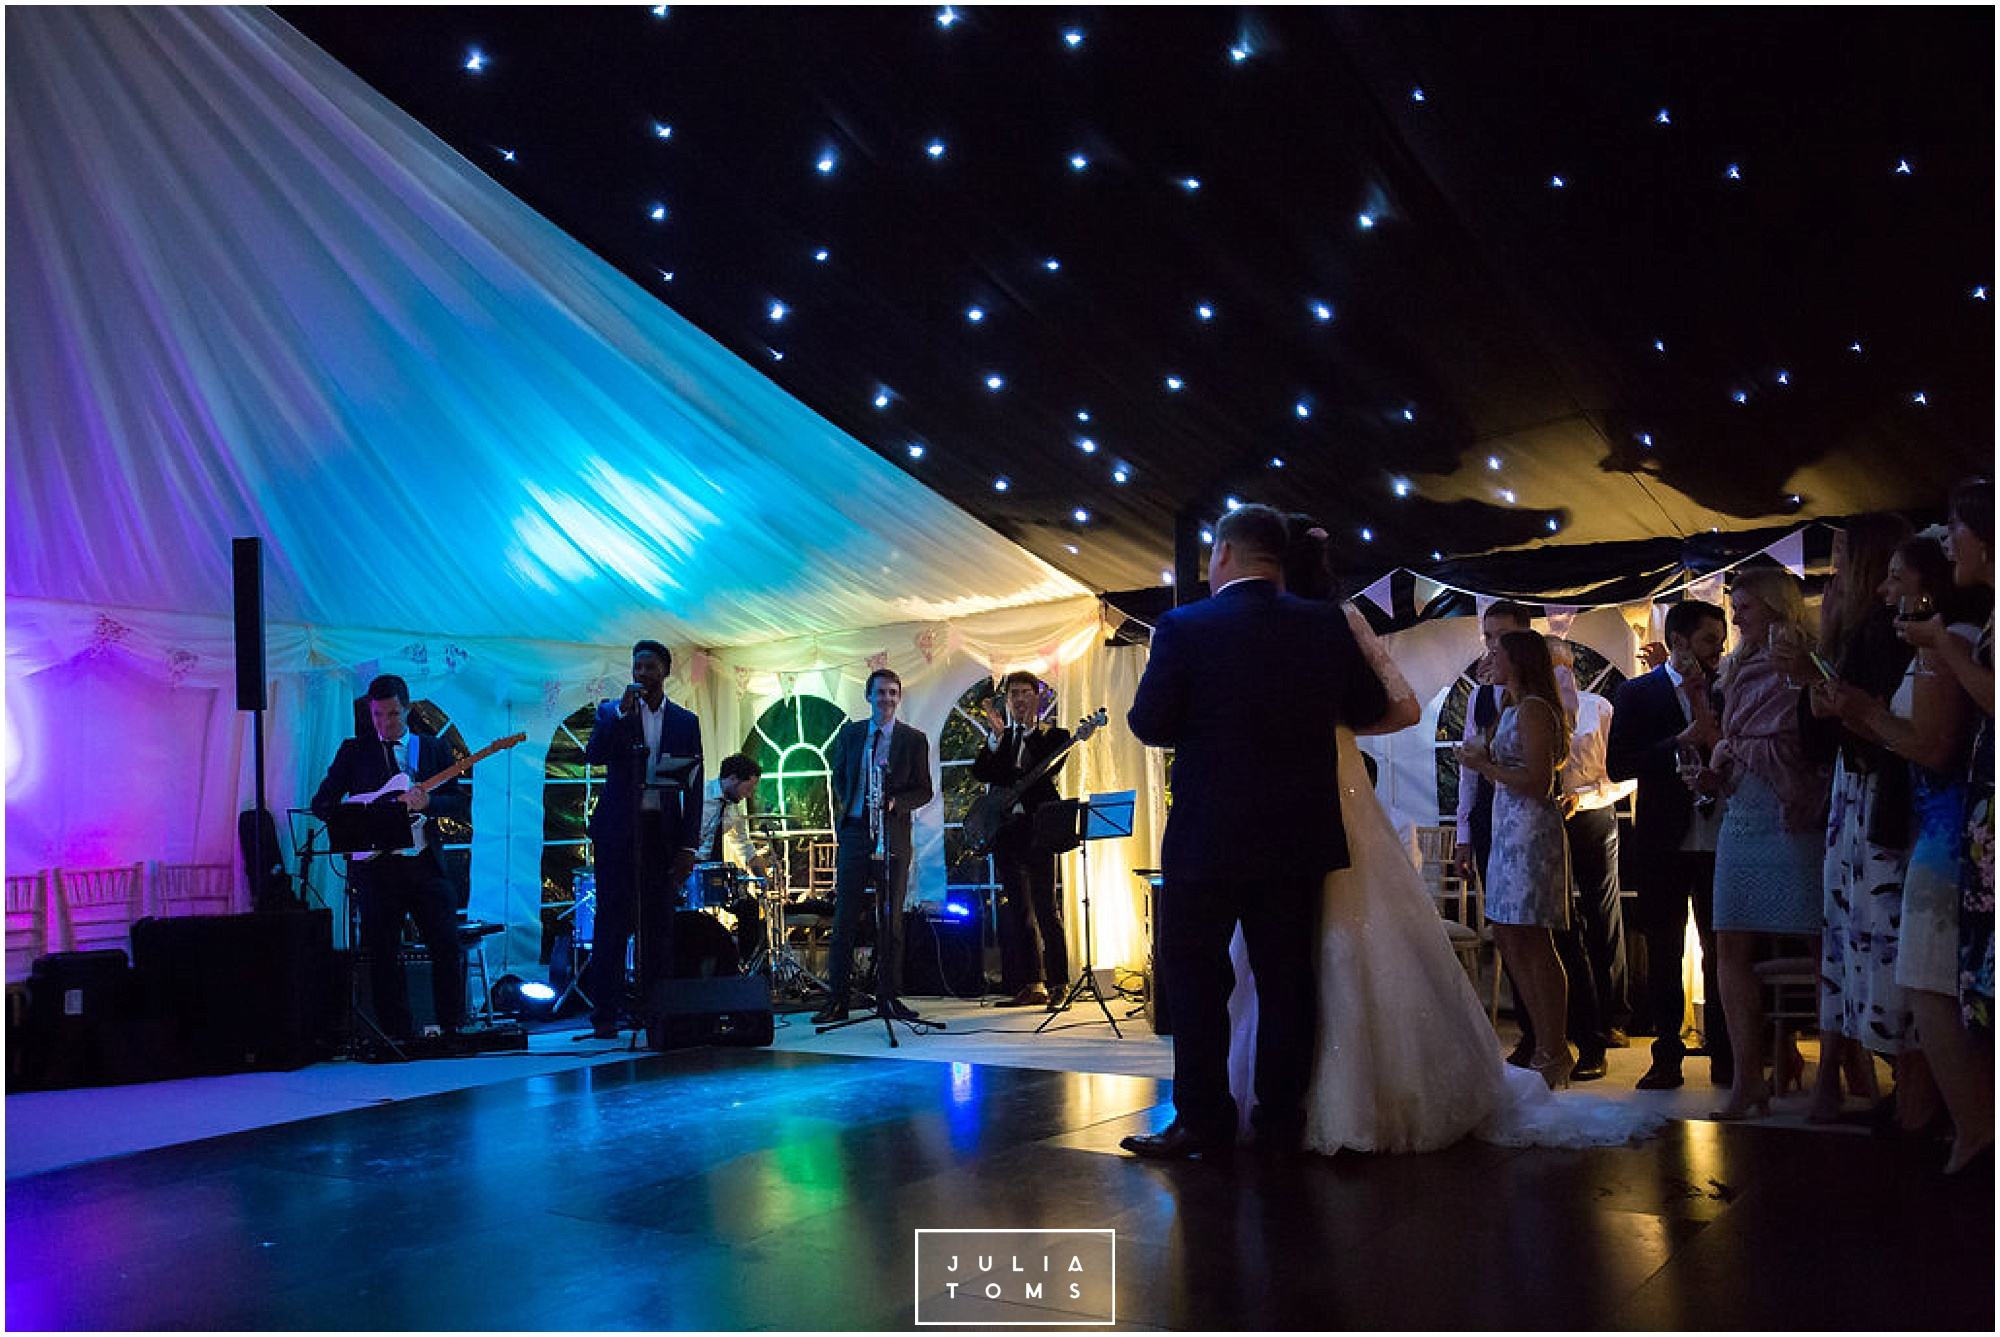 JuliaToms_chichester_fishbourne_wedding_photograher_edes_house_049.jpg